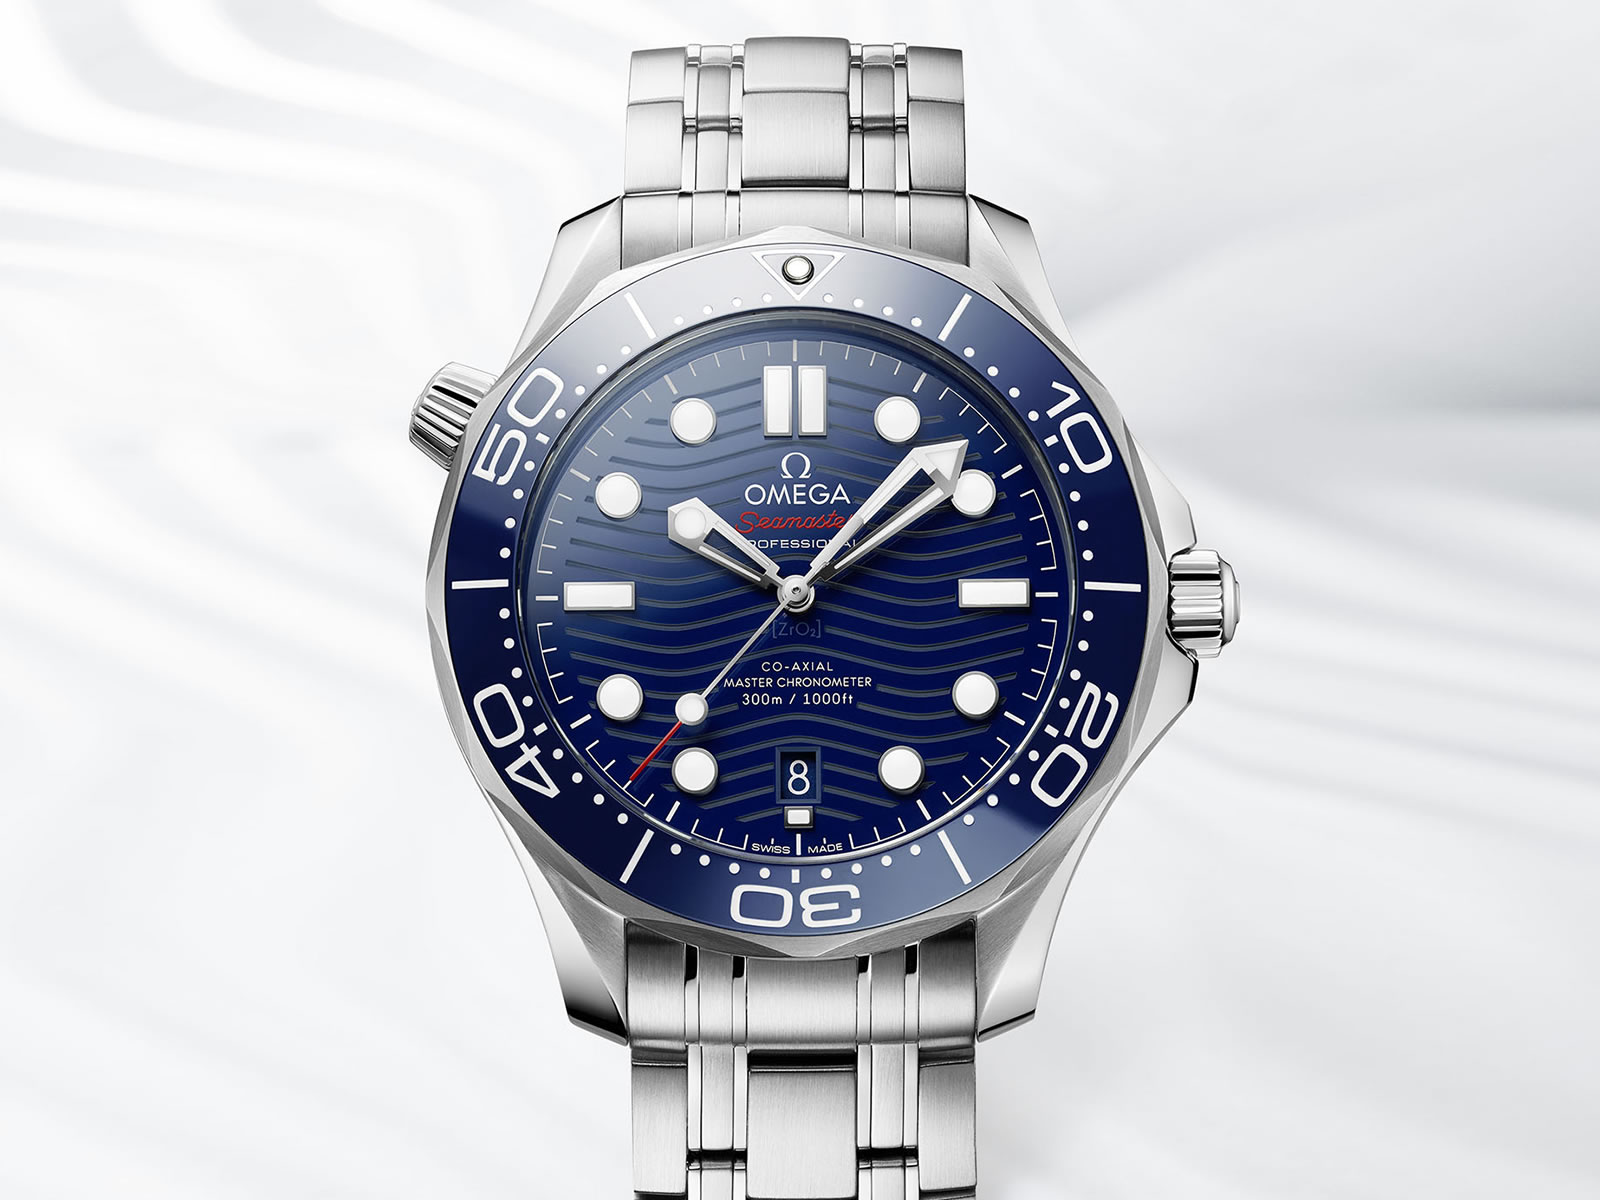 210-30-42-20-03-001-omega-seamaster-diver-300m-collection-3-.jpg